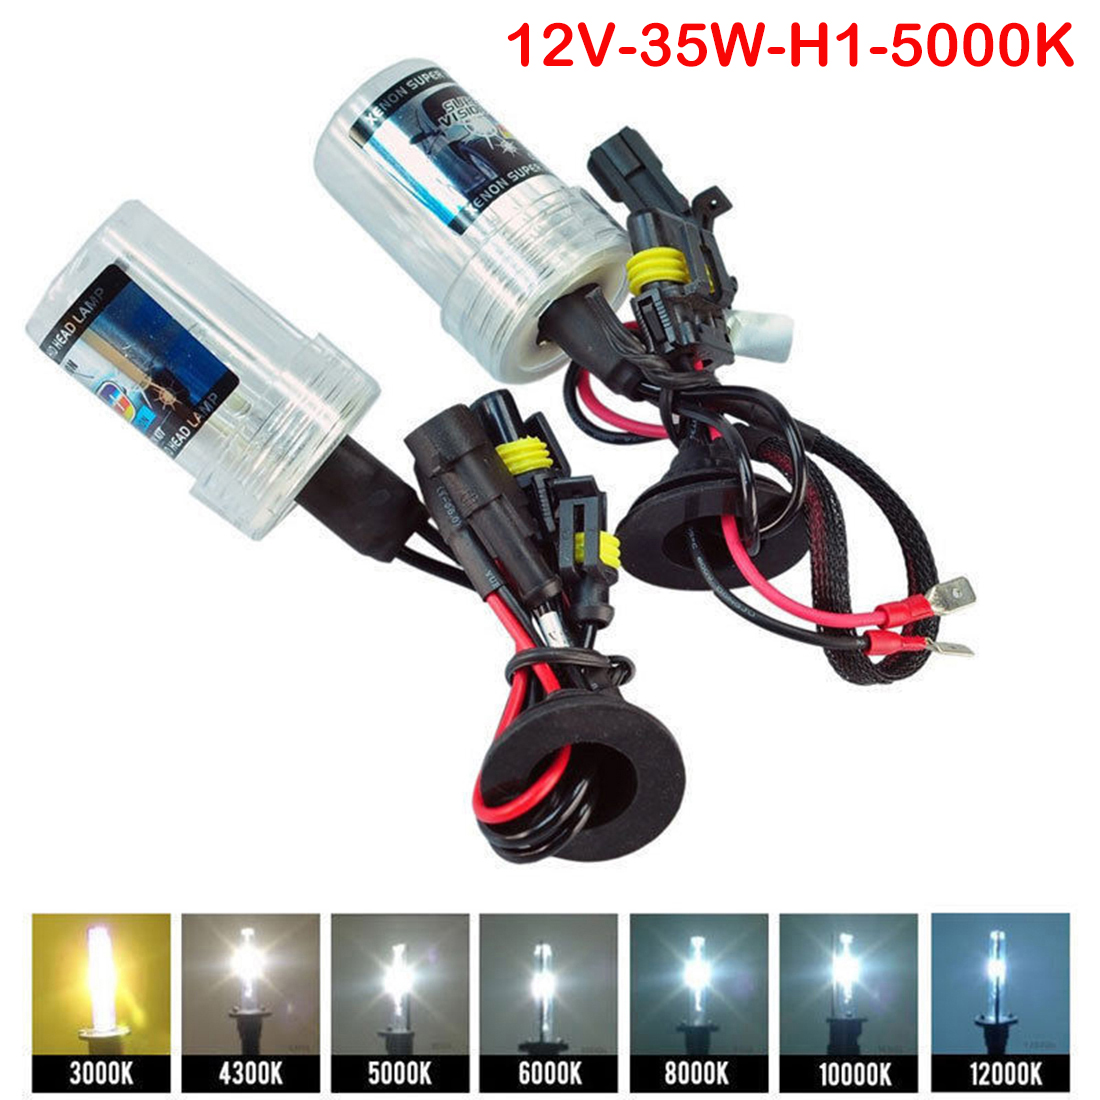 Tonewan New H1 H3 H7 H11 9005 9006 880 35W 55W HID  Bulb Auto Car Headlight Lamp 3000k 4300k 5000k 6000k 8000k 10000k 12000k